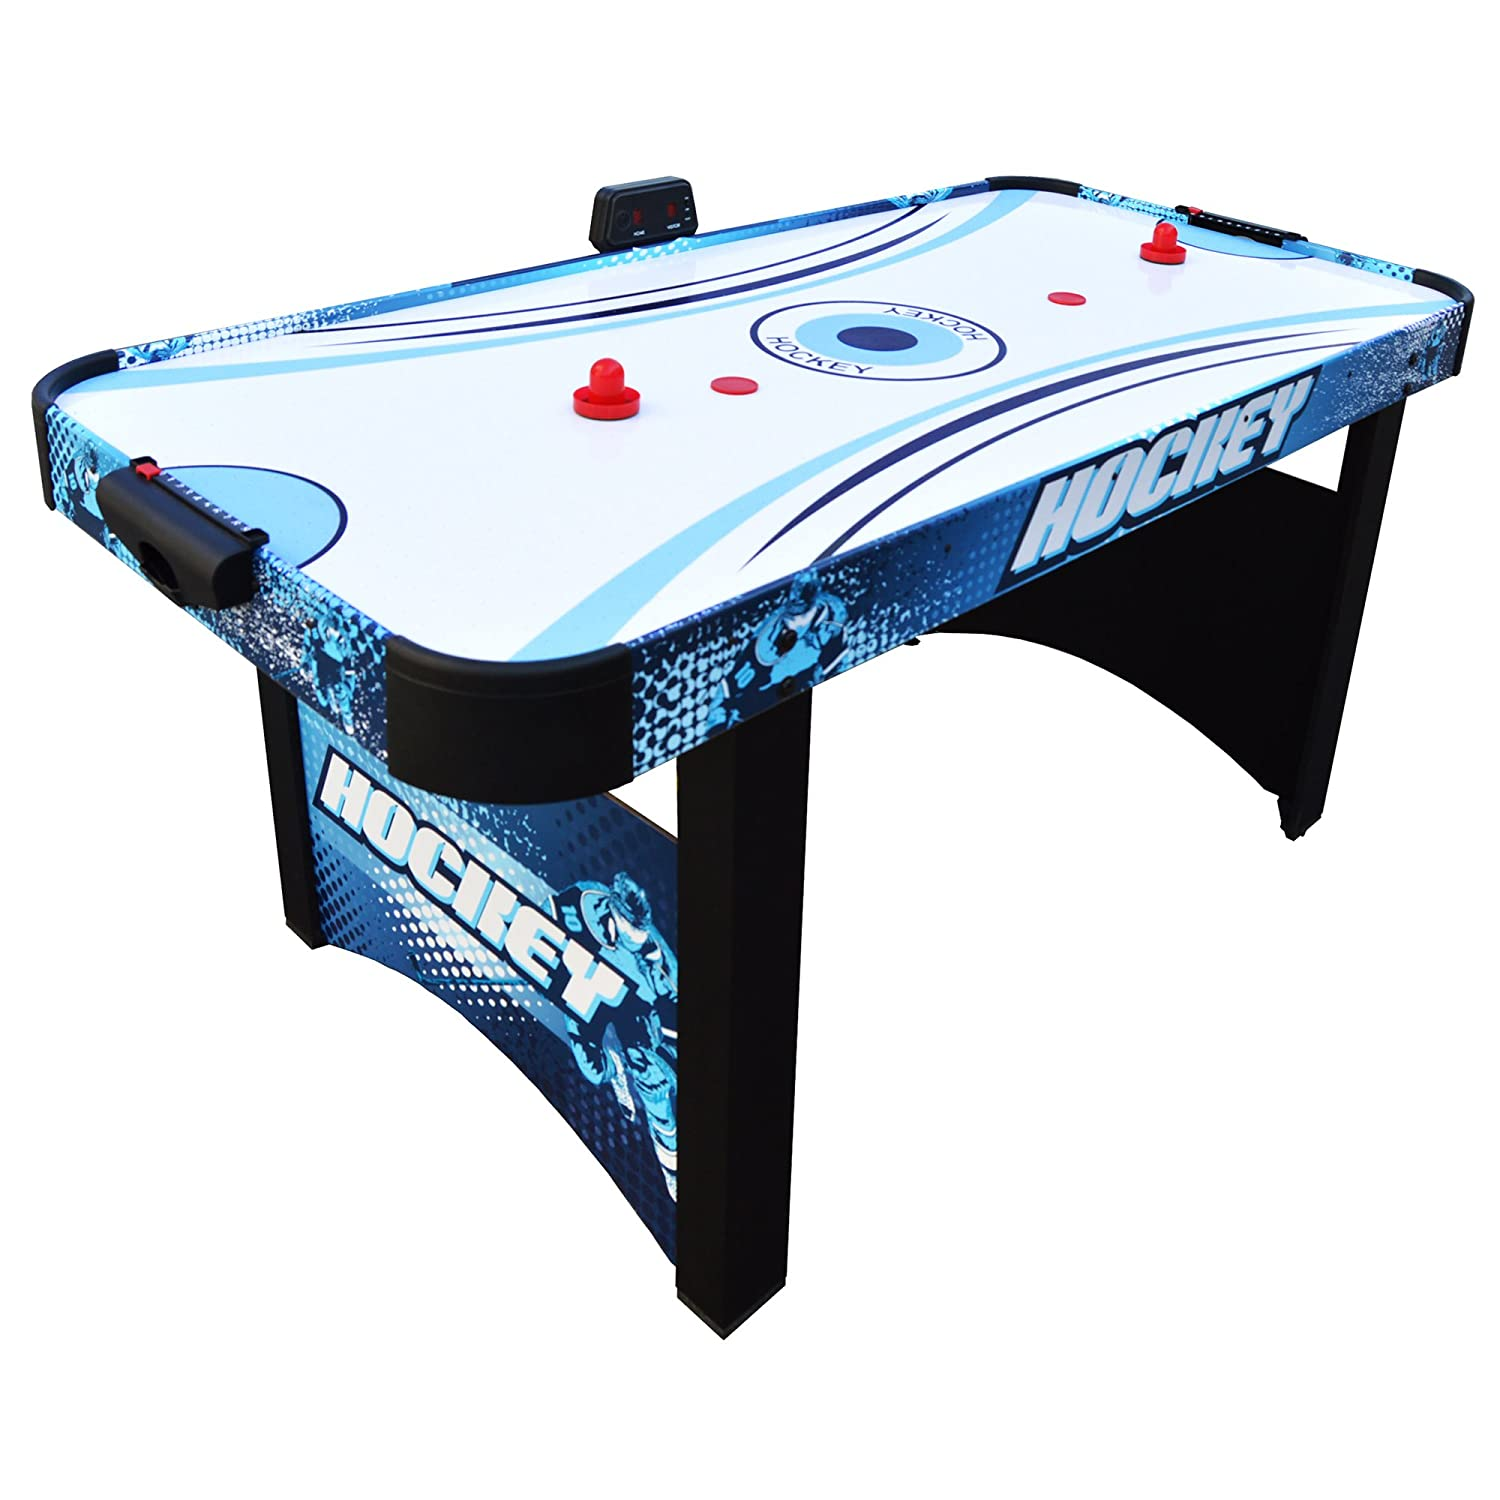 Hathaway Enforcer Air Hockey Table 5.5-ft for Kids with Electronic Scoring for Family Game Rooms